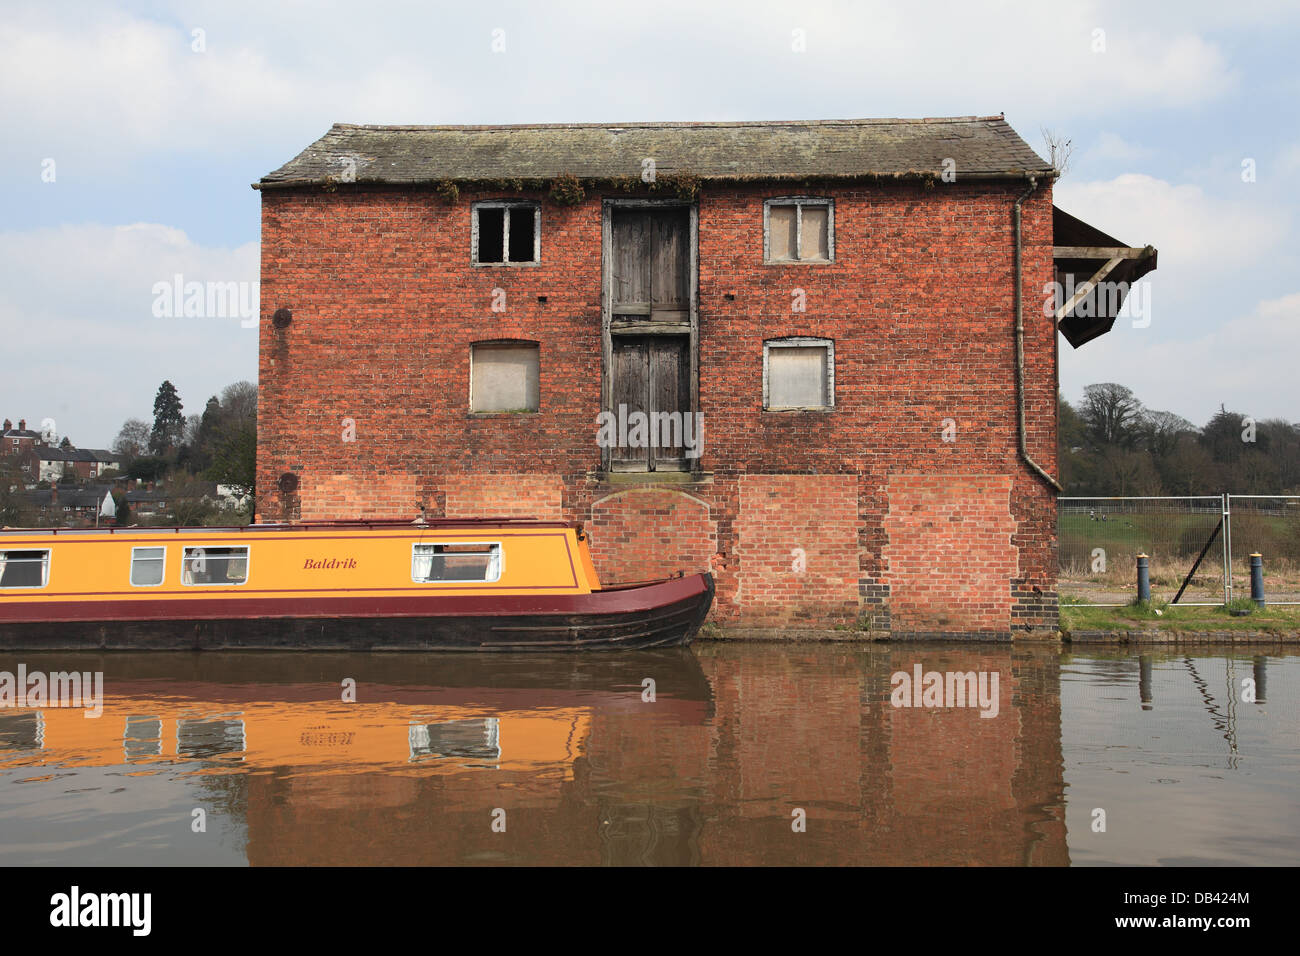 The Llangollen Canal wharf at Ellesmere, Shropshire with a redundant canal warehouse - Stock Image